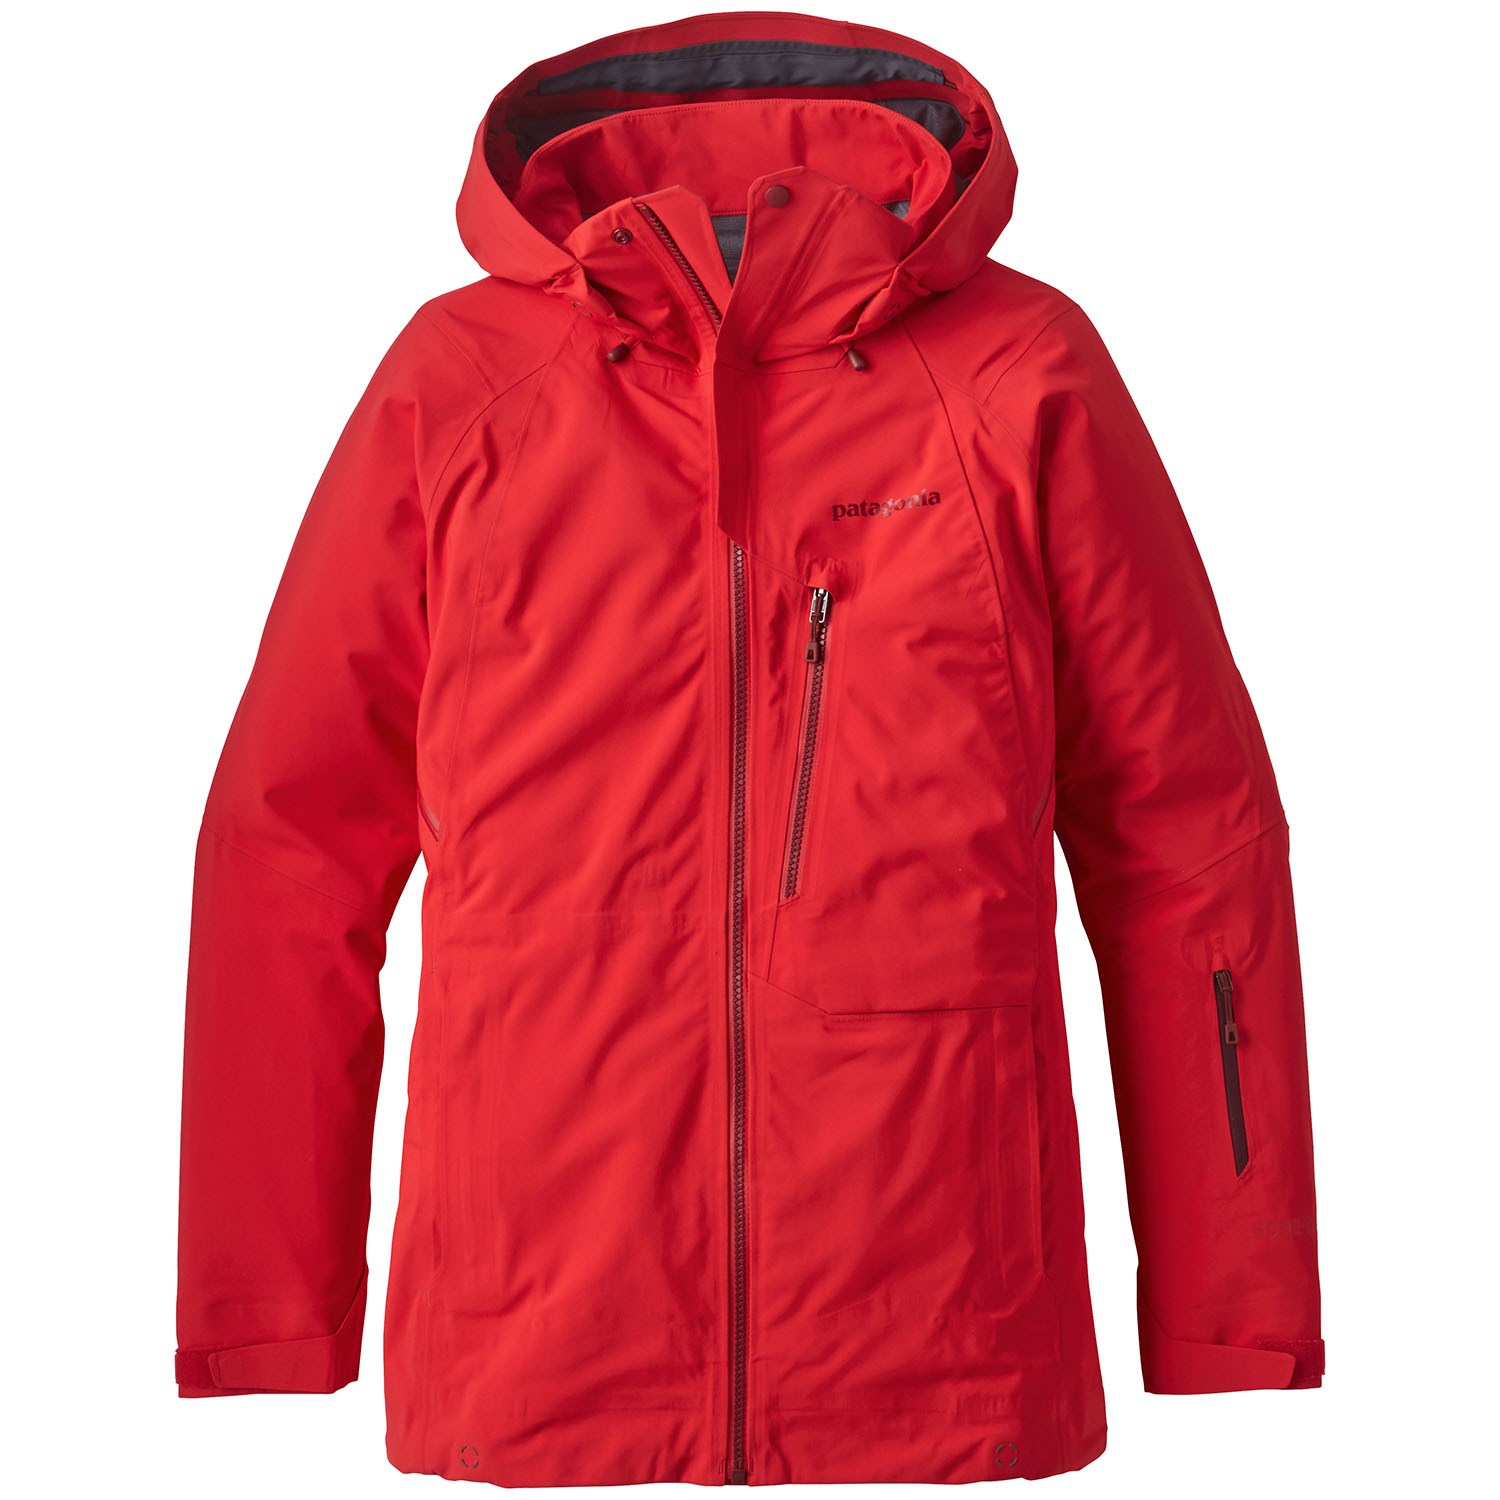 Red jacket womens clothing